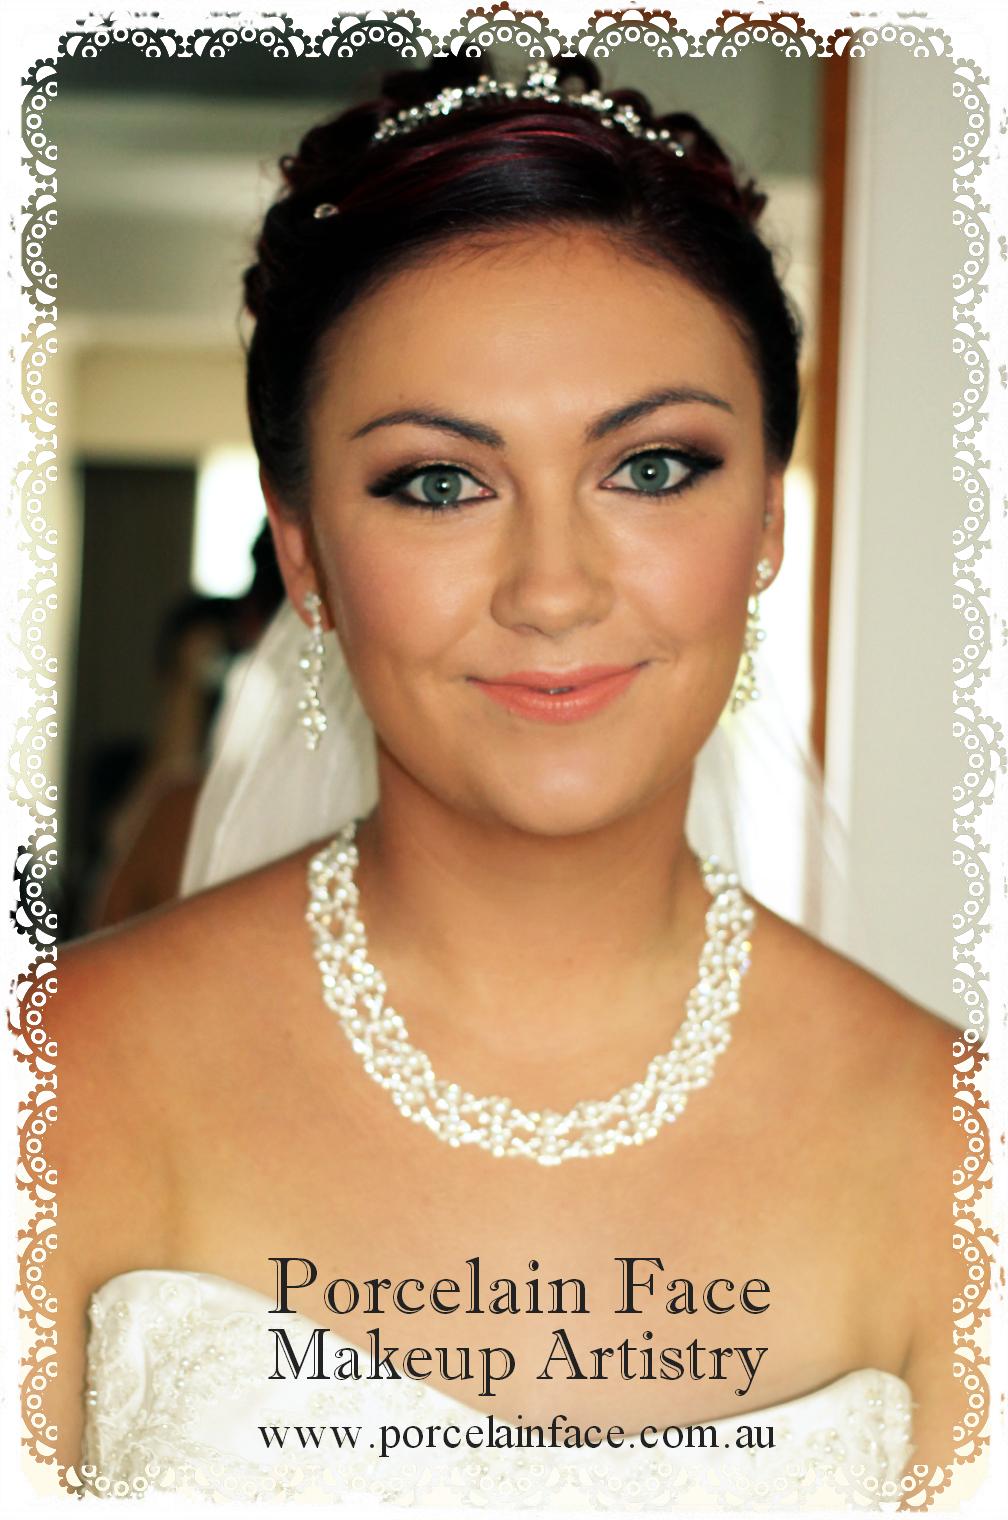 Gold Coast wedding hair and make up